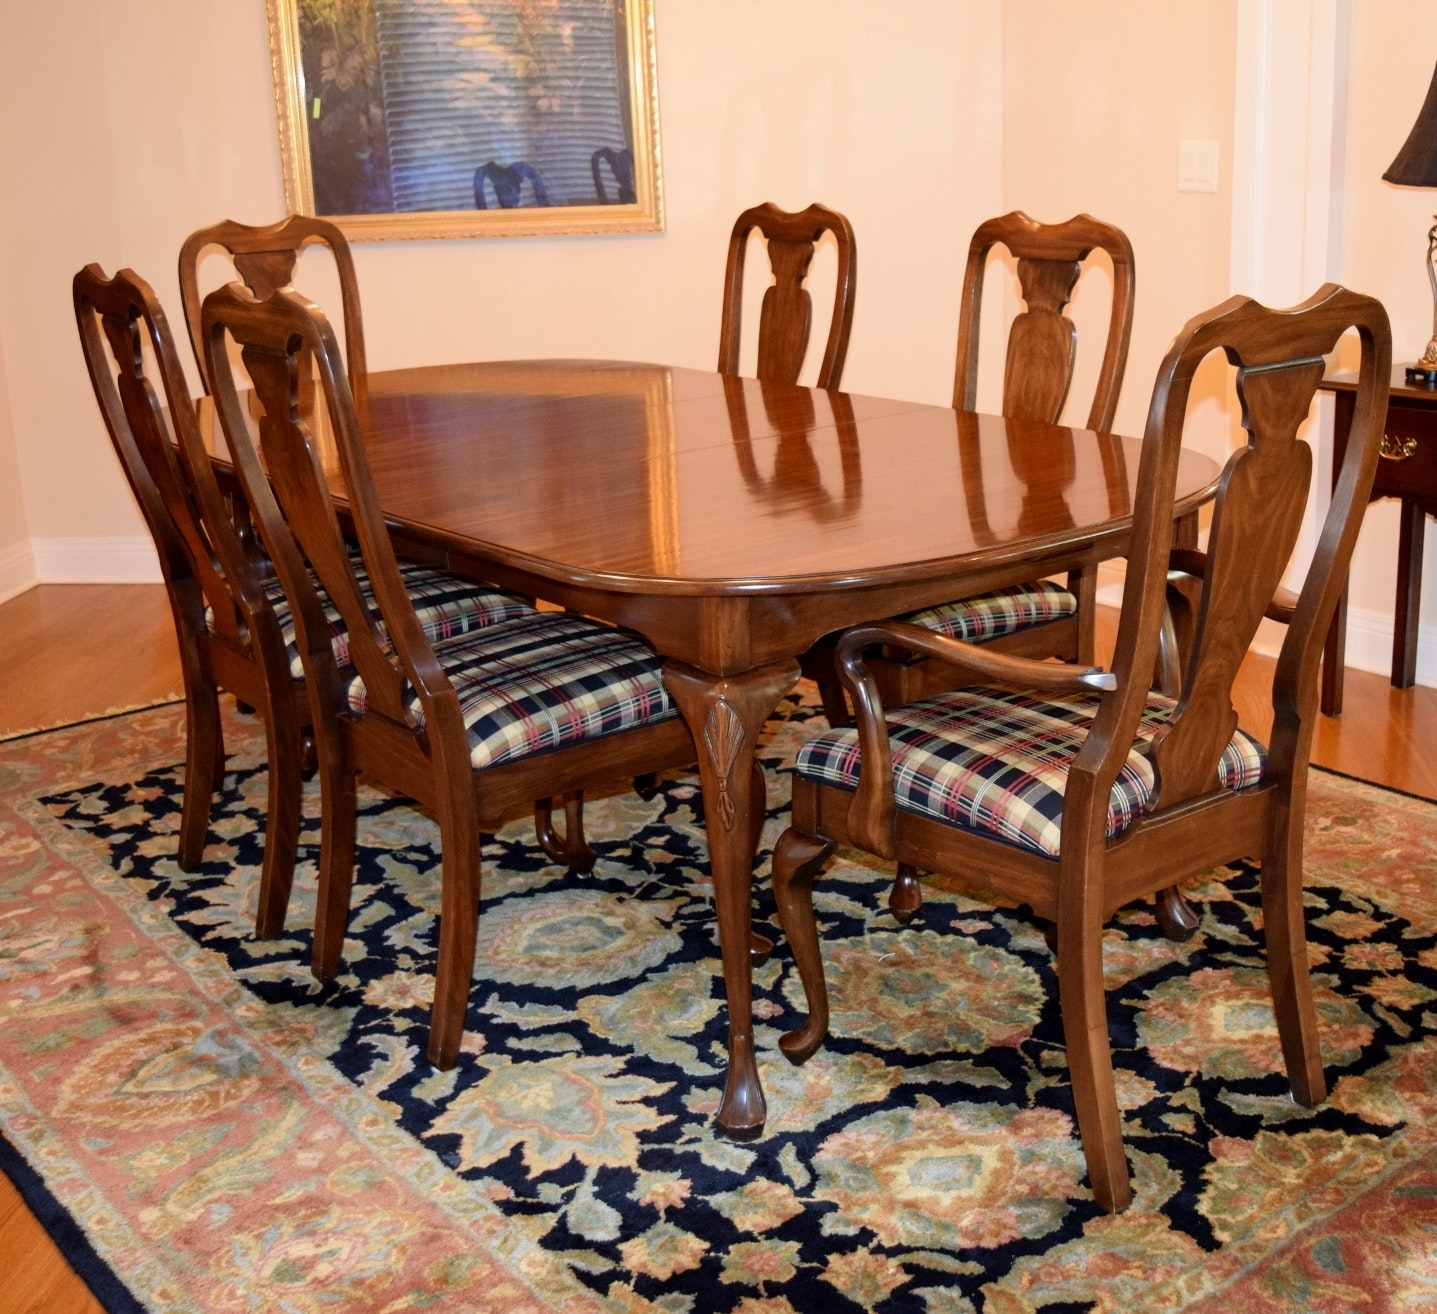 Queen anne style dining room furniture